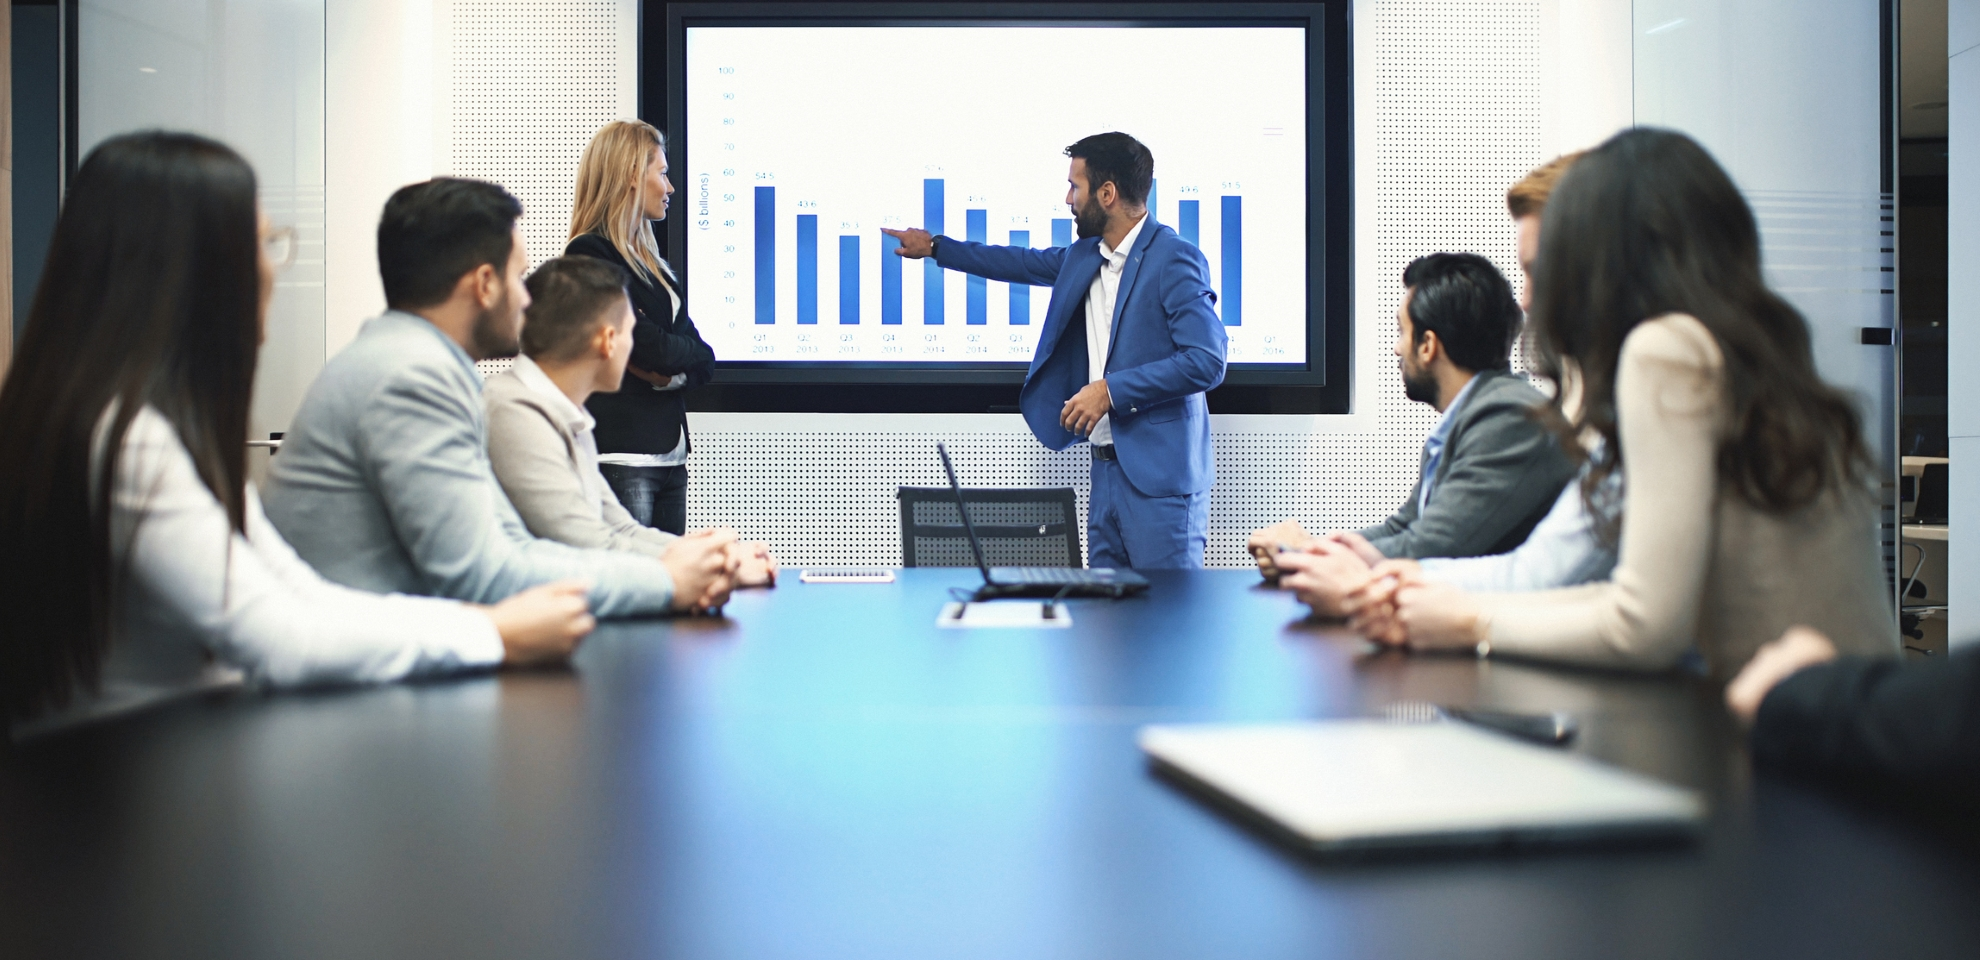 5 Technology Trends That Are Shaping Business Presentations for The Future